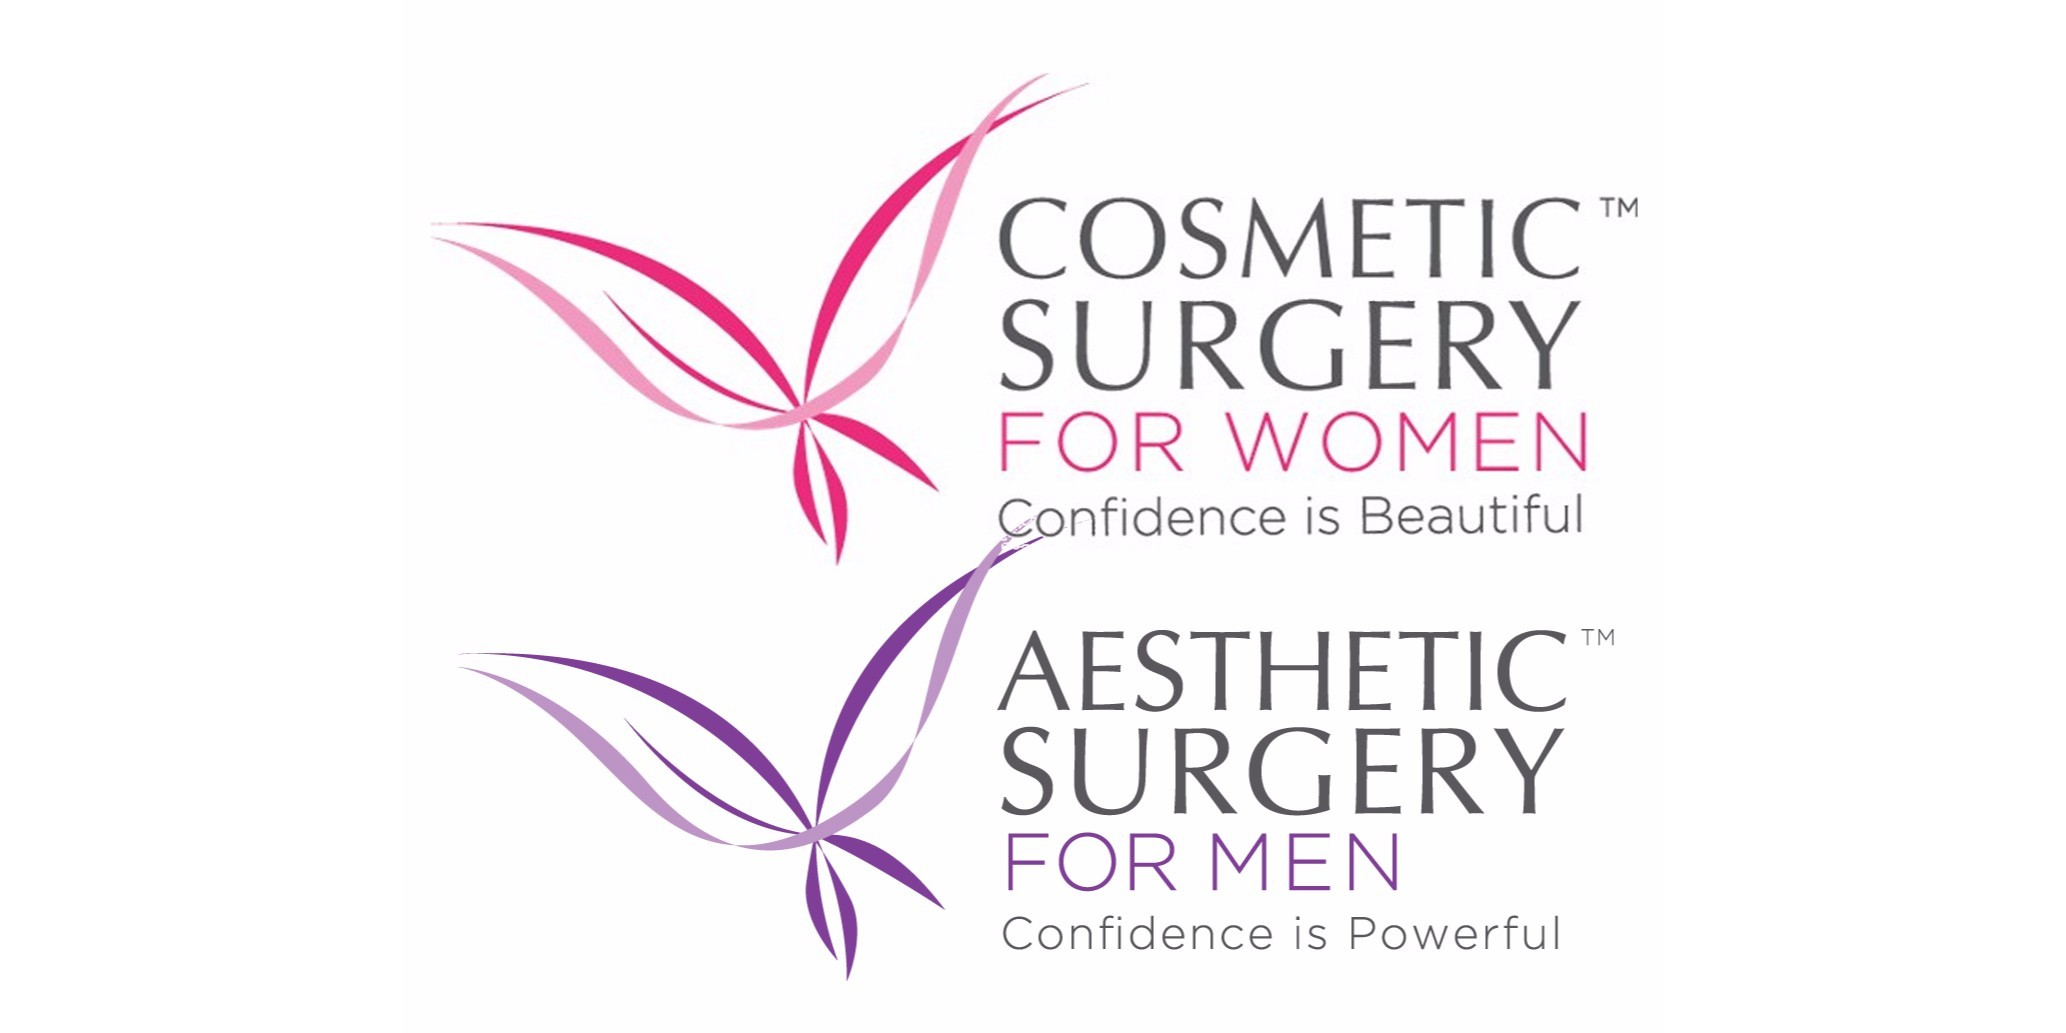 Cosmetic Surgery for Women & Aesthetic Surgery for Men - Two LOCATIONS (Melbourne or Williamstown)